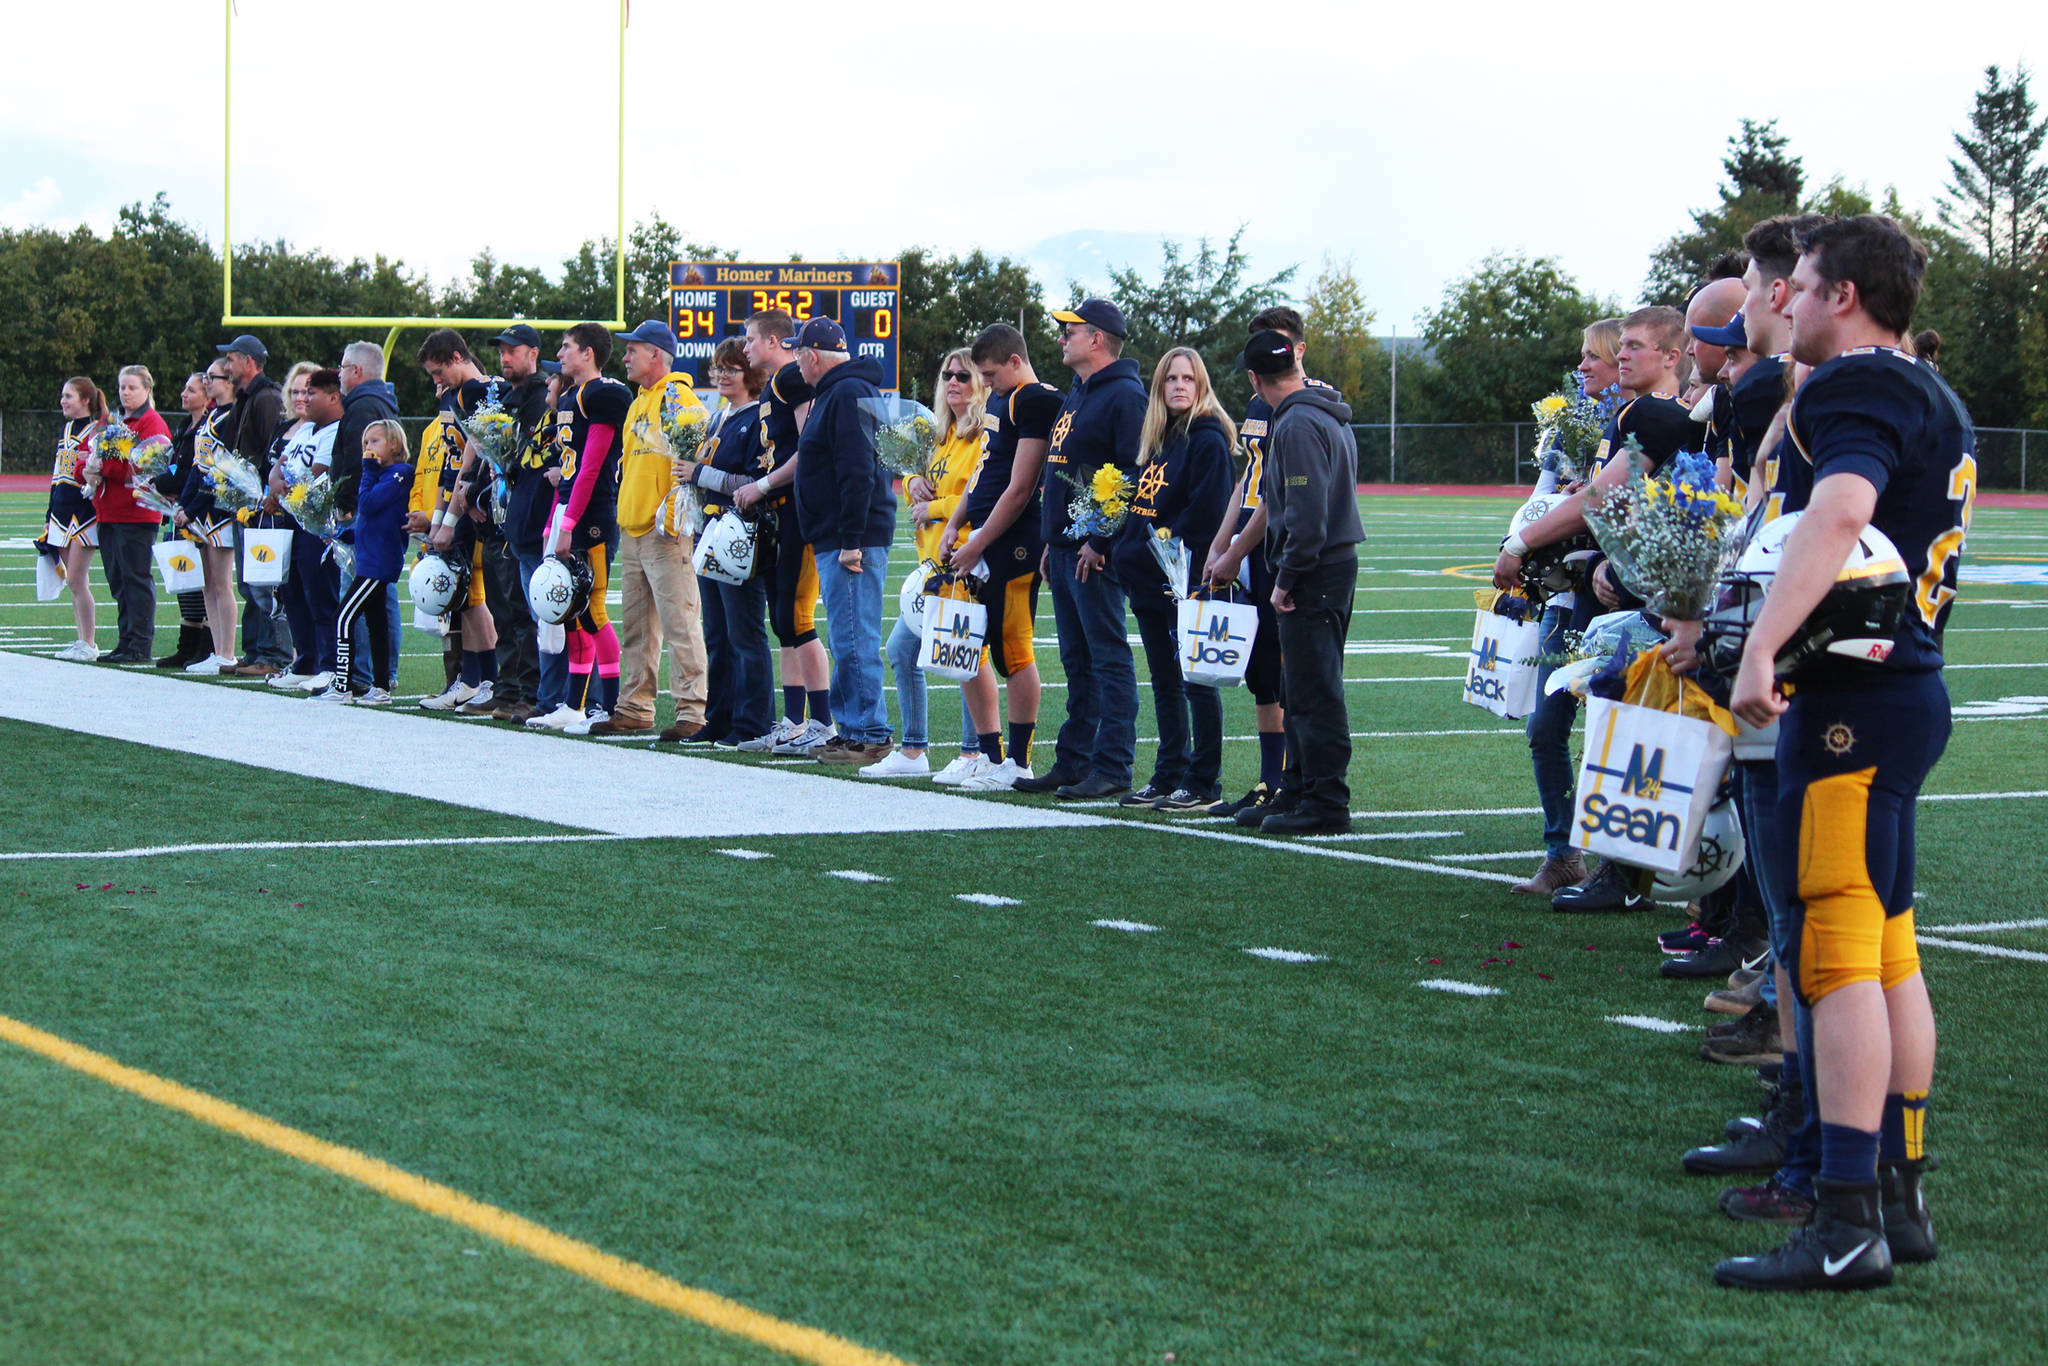 Seniors football players and cheerleaders from Homer High School stand on the field with their family members to be recognized during a senior night presentation during halftime of the game between the Mariners and the Head of the Bay Cougars on Friday, Sept. 29, 2017 at the Mariner field in Homer, Alaska. (Photo by Megan Pacer/Homer News)